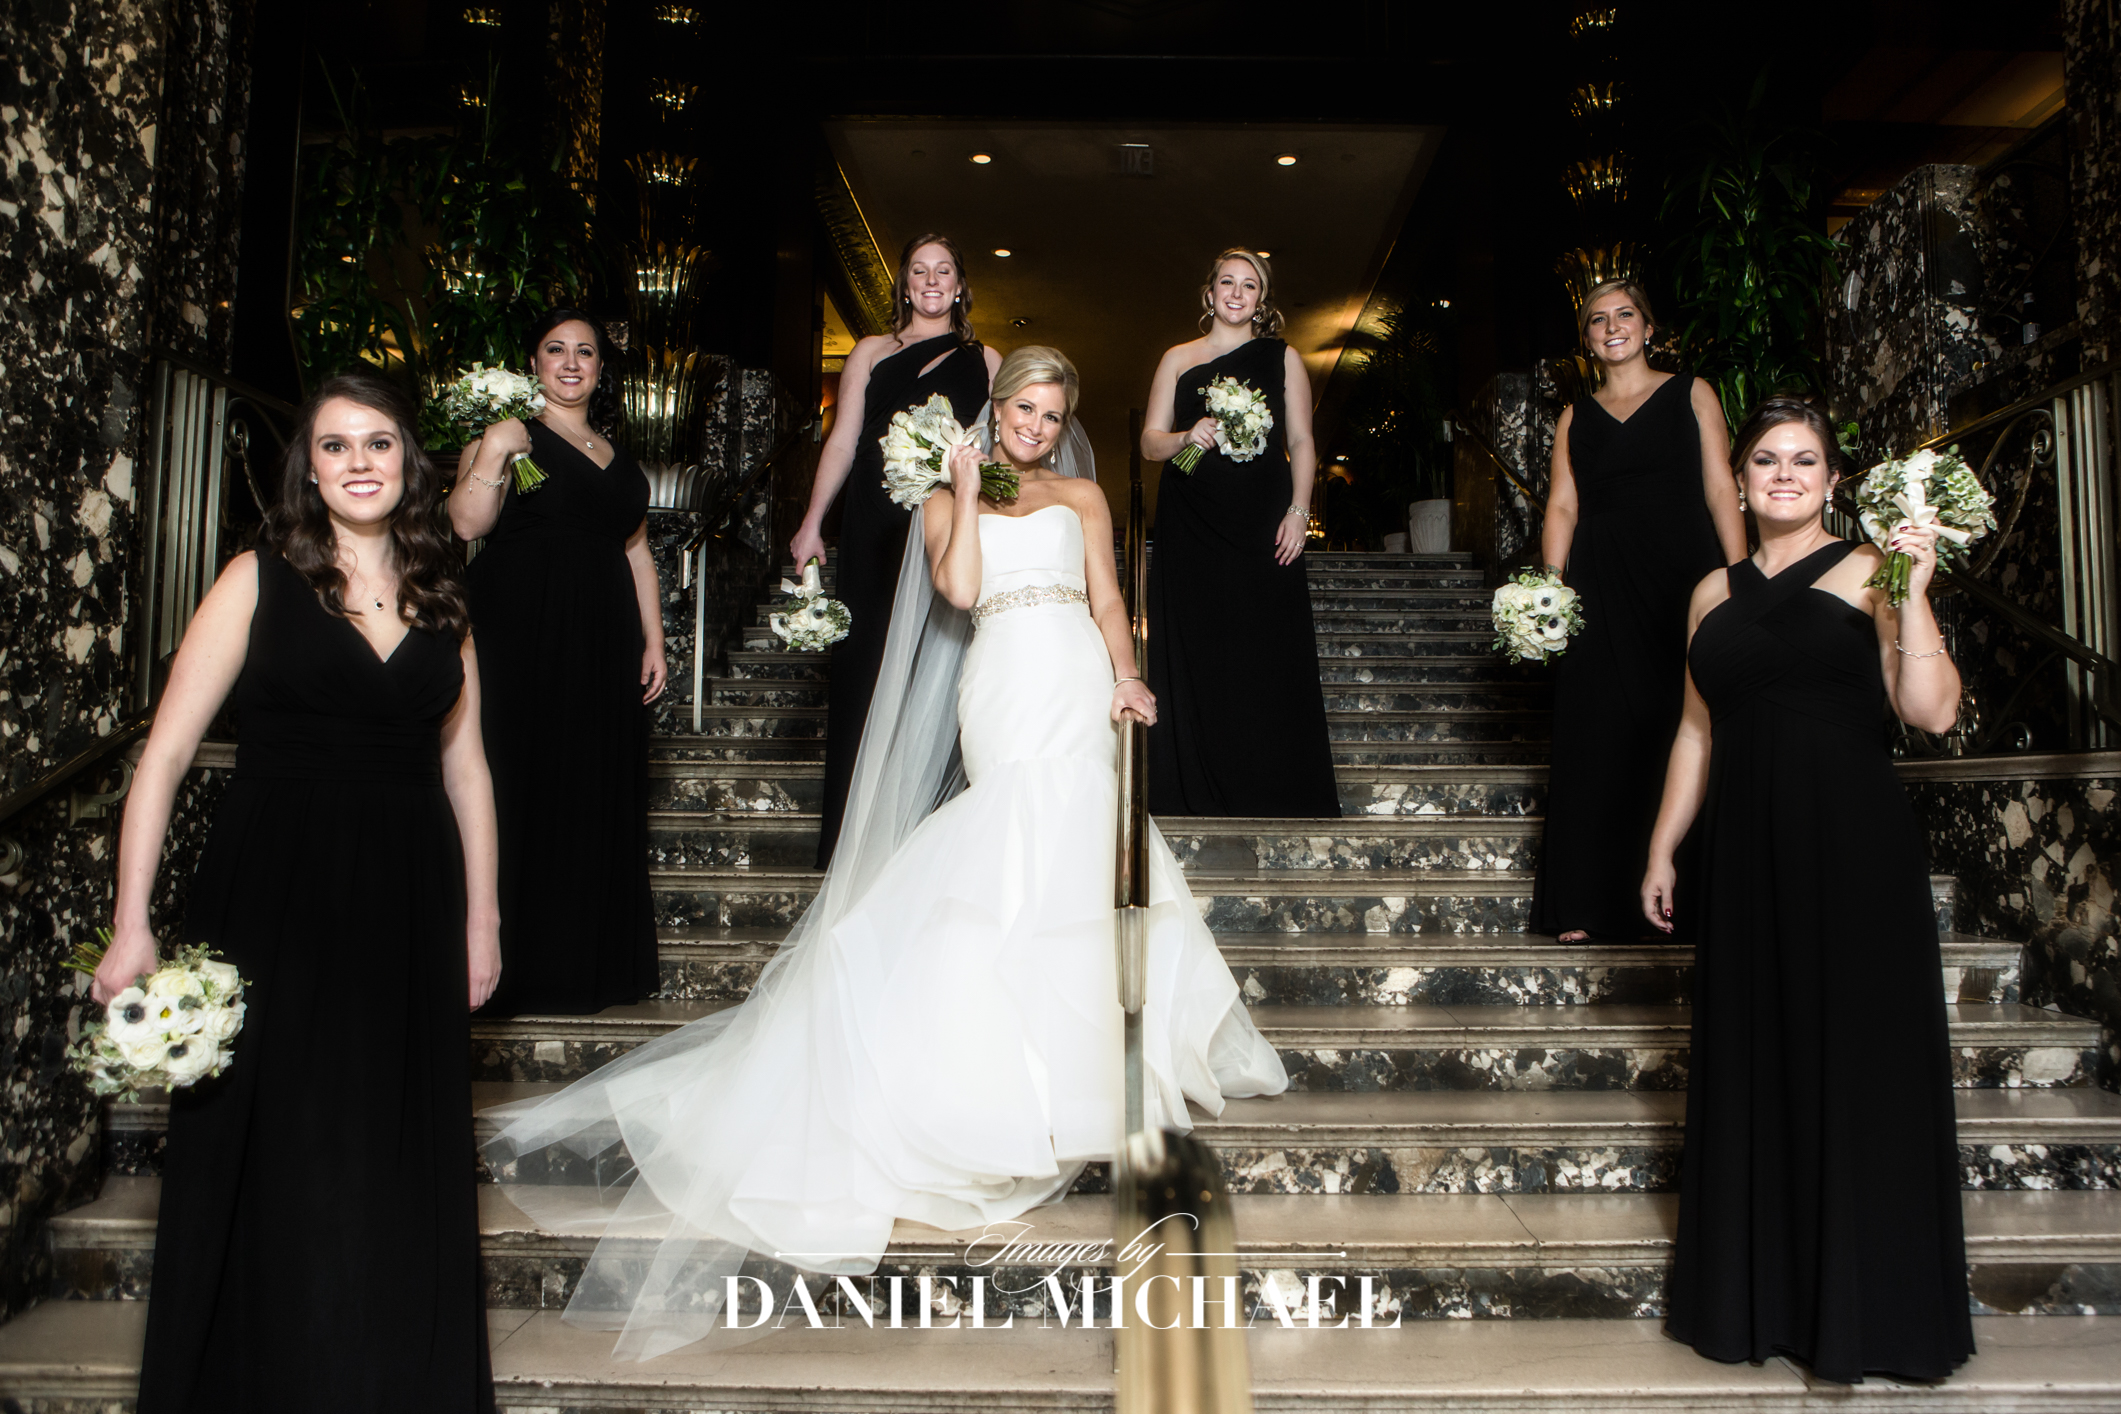 Hall of Mirrors Ceremony Venue Photography